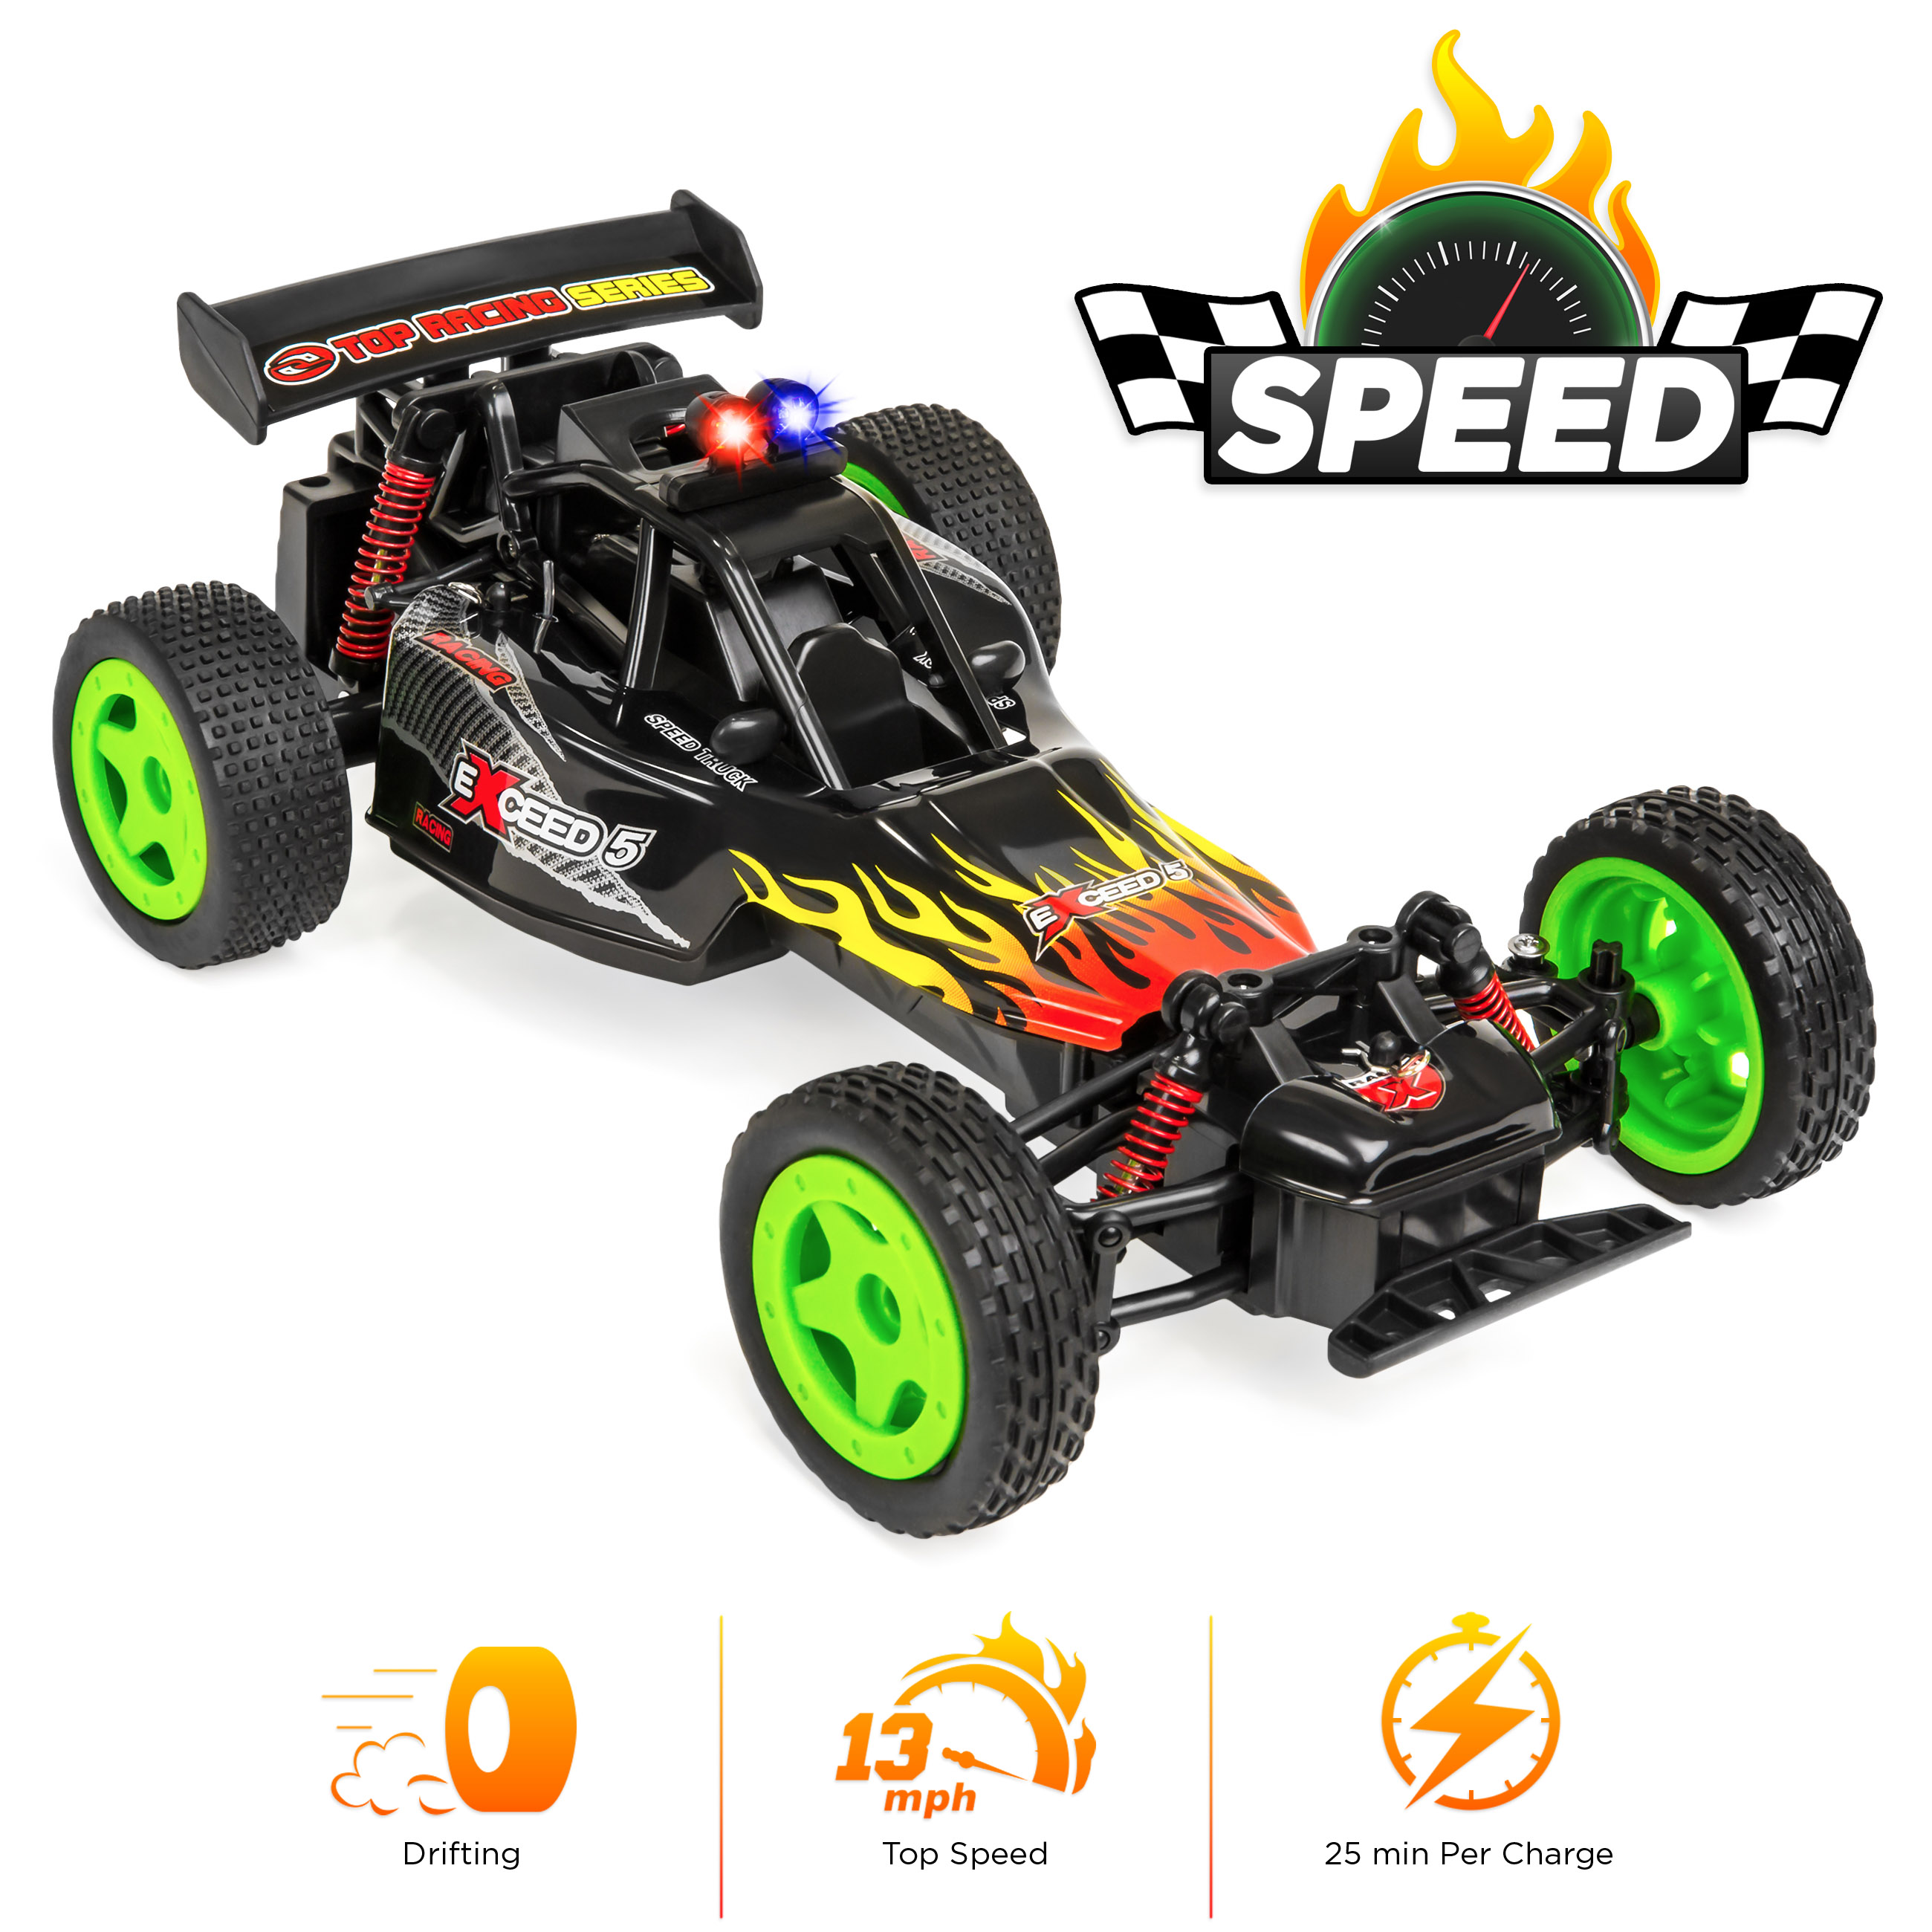 Best Choice Products 1/16 Scale 2.4GHz 4WD High Speed RC Drifting Stunt Racing Car w/ Rechargeable Battery - Black/Green